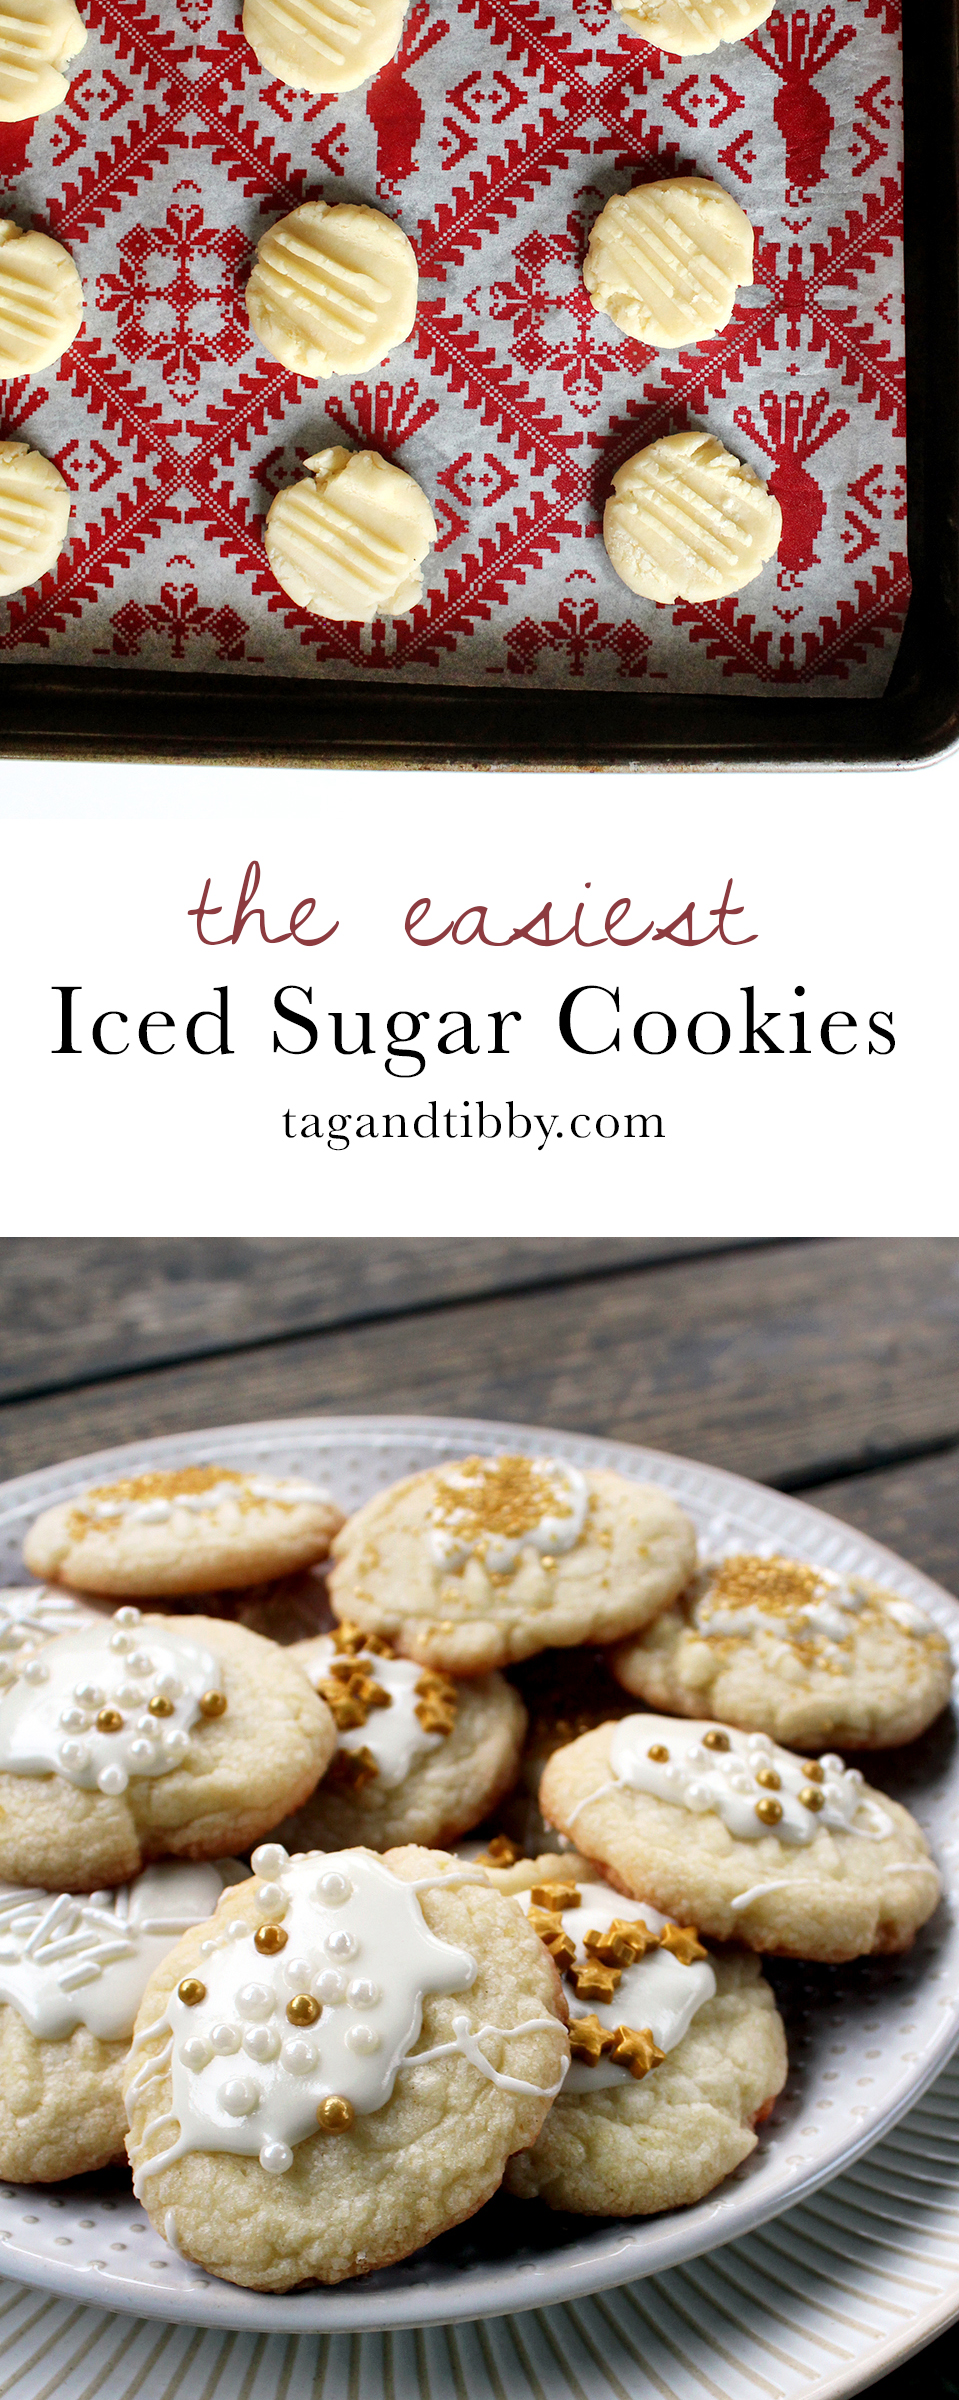 the easiest iced sugar cookies recipe with sprinkles